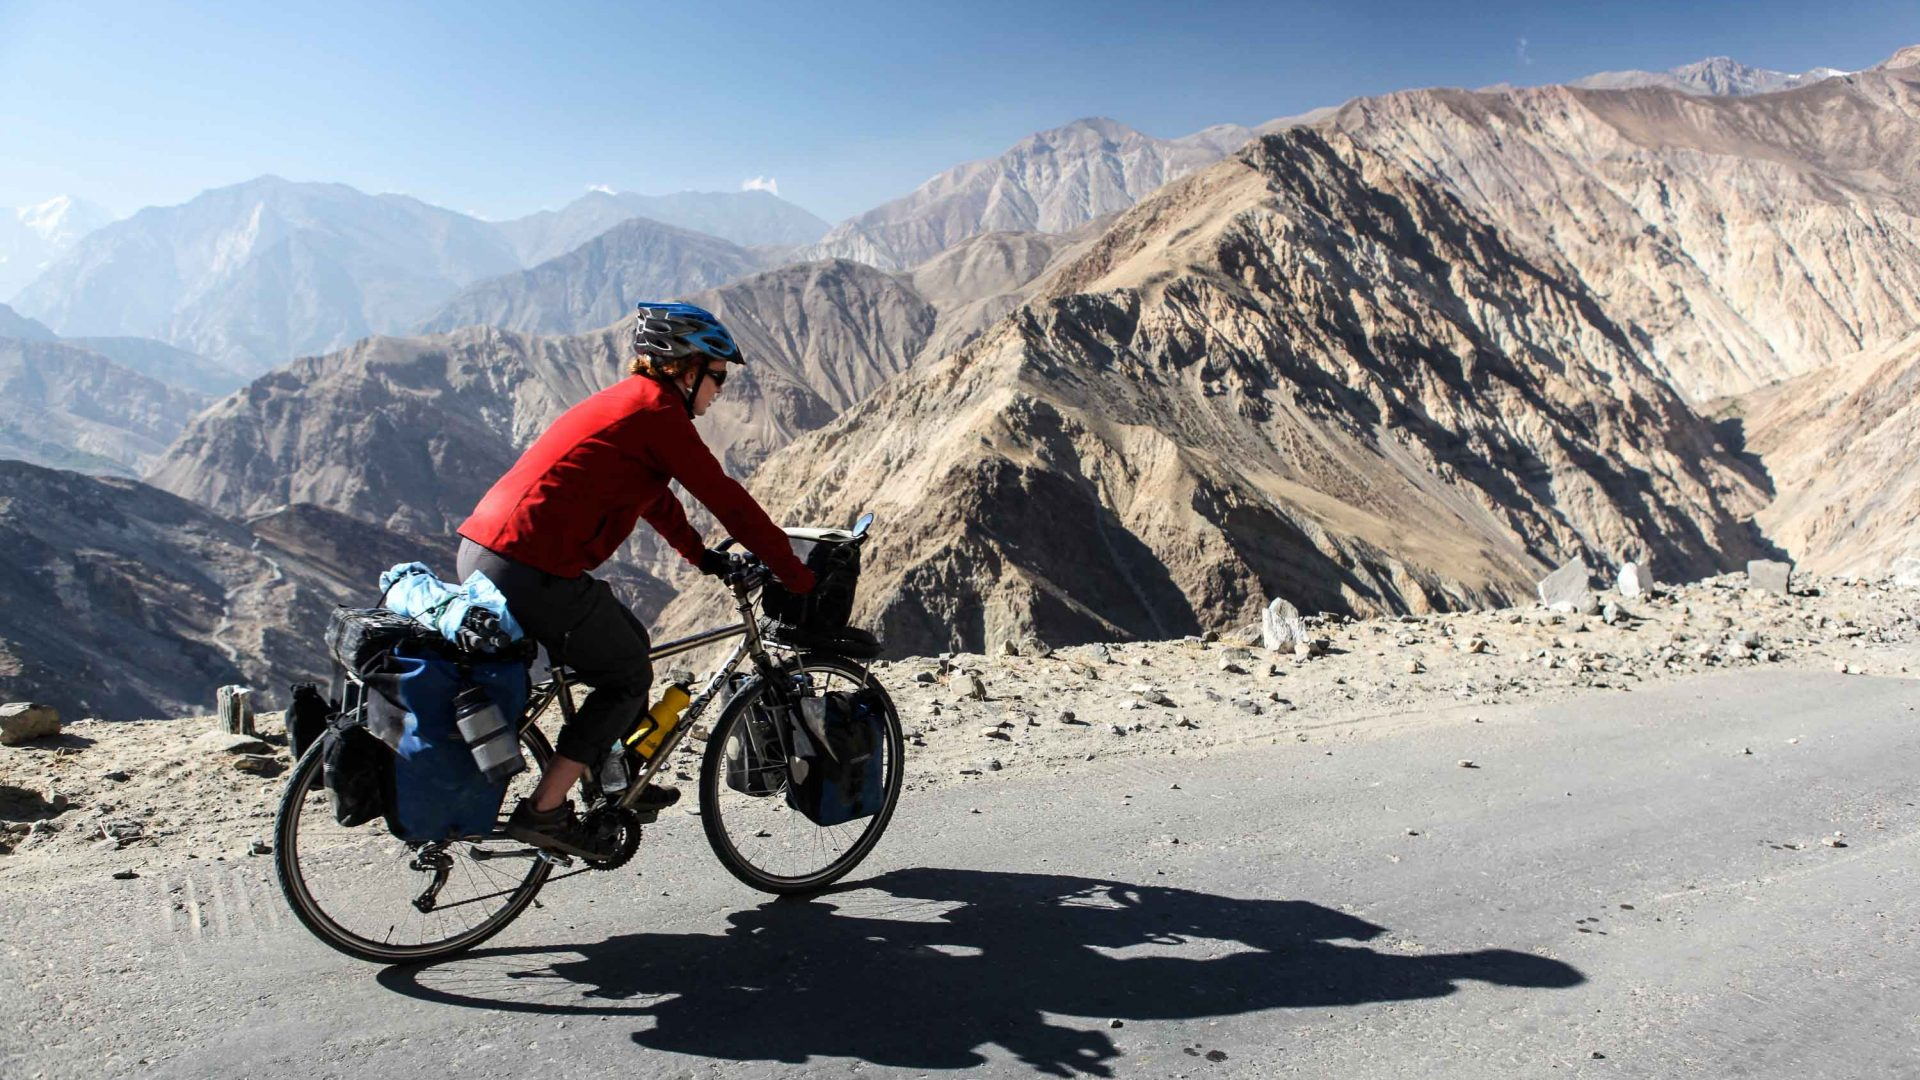 Cycling in the Himalayas.